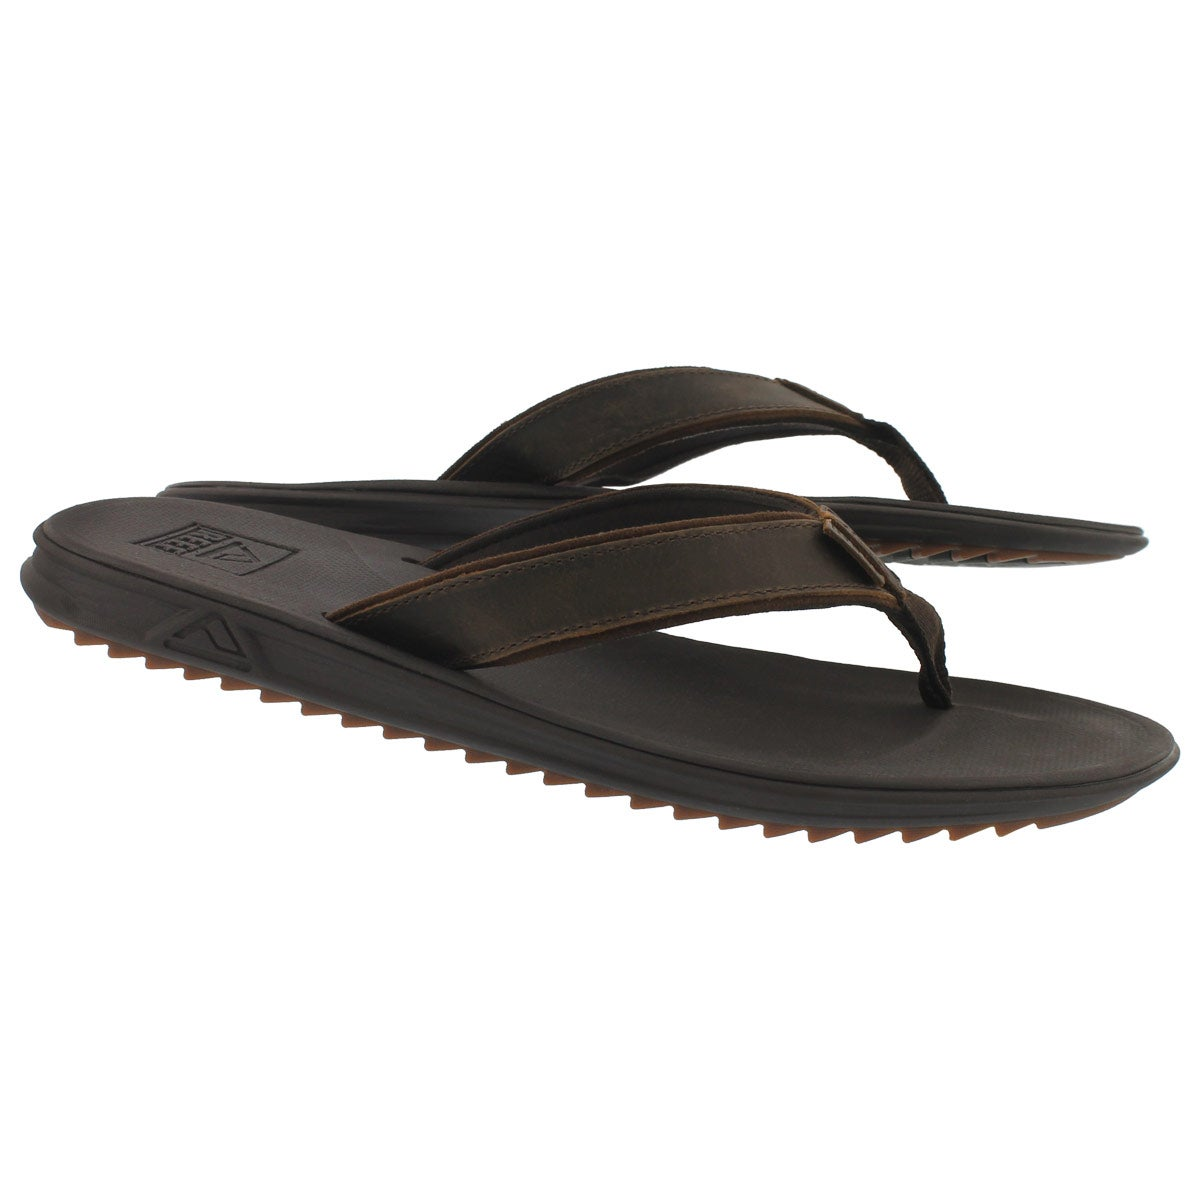 Mns Slammed Rover Lux brown thong sandal